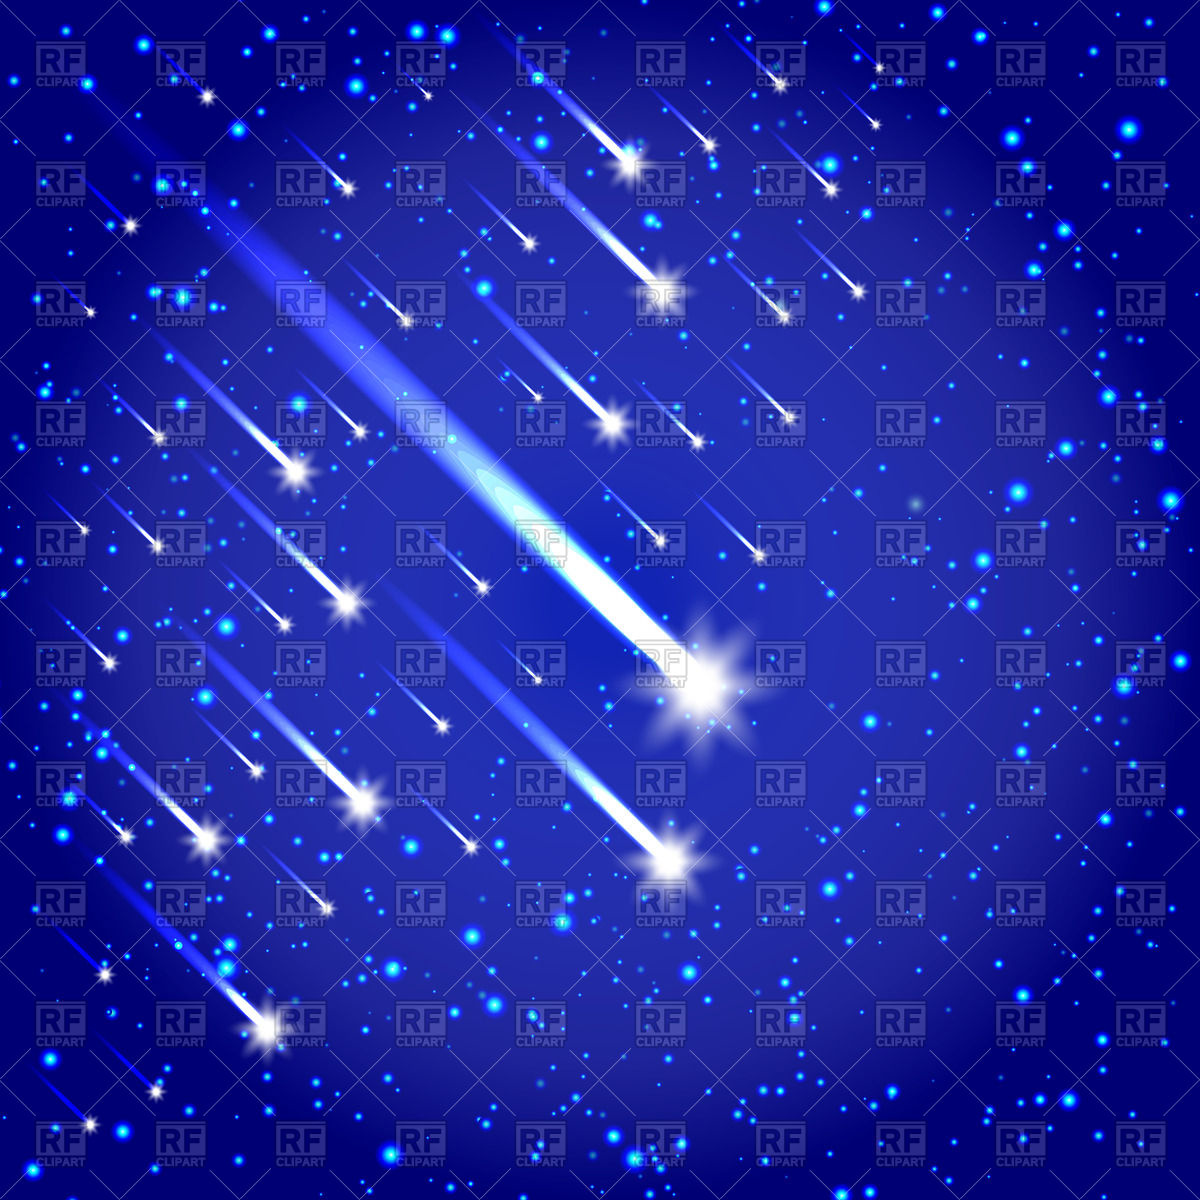 backgrounds textures abstract space background with shooting stars 1200x1200